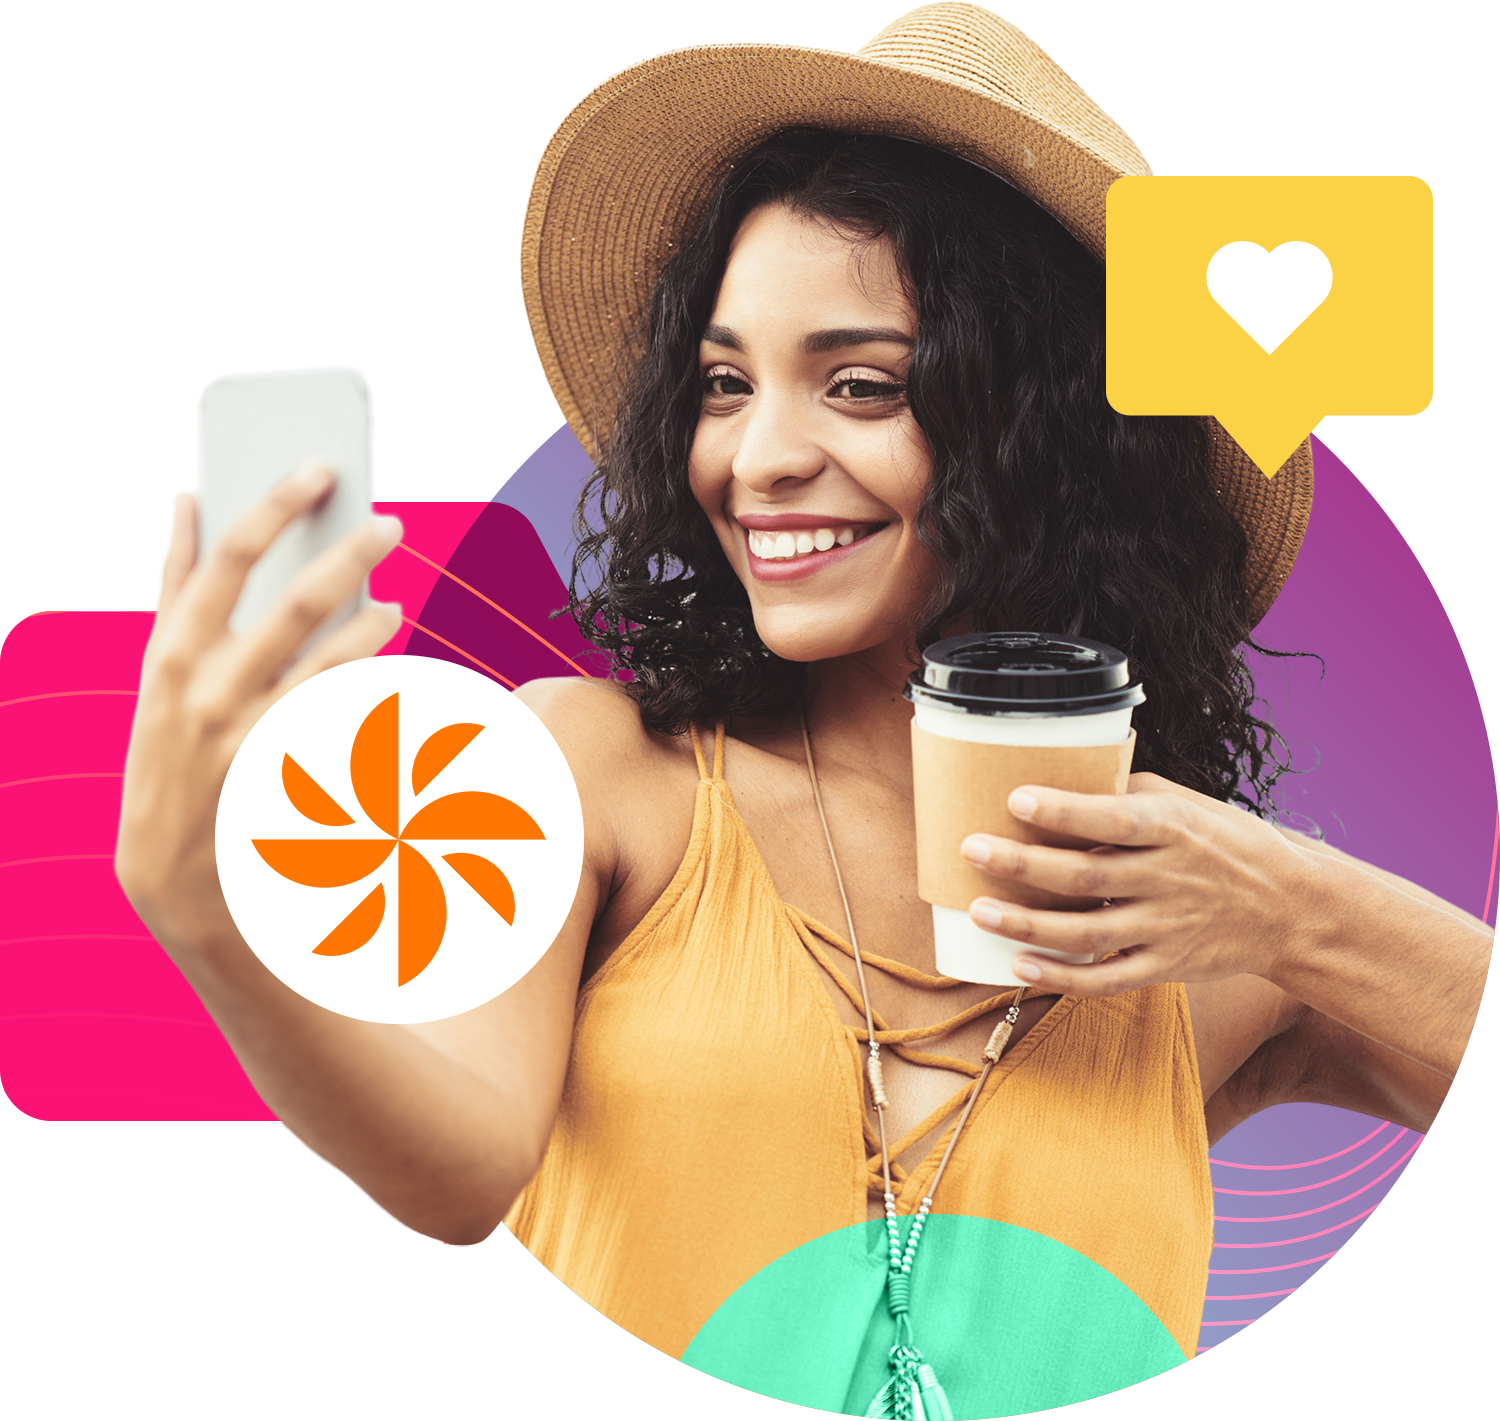 girl holding coffee and taking a selfie